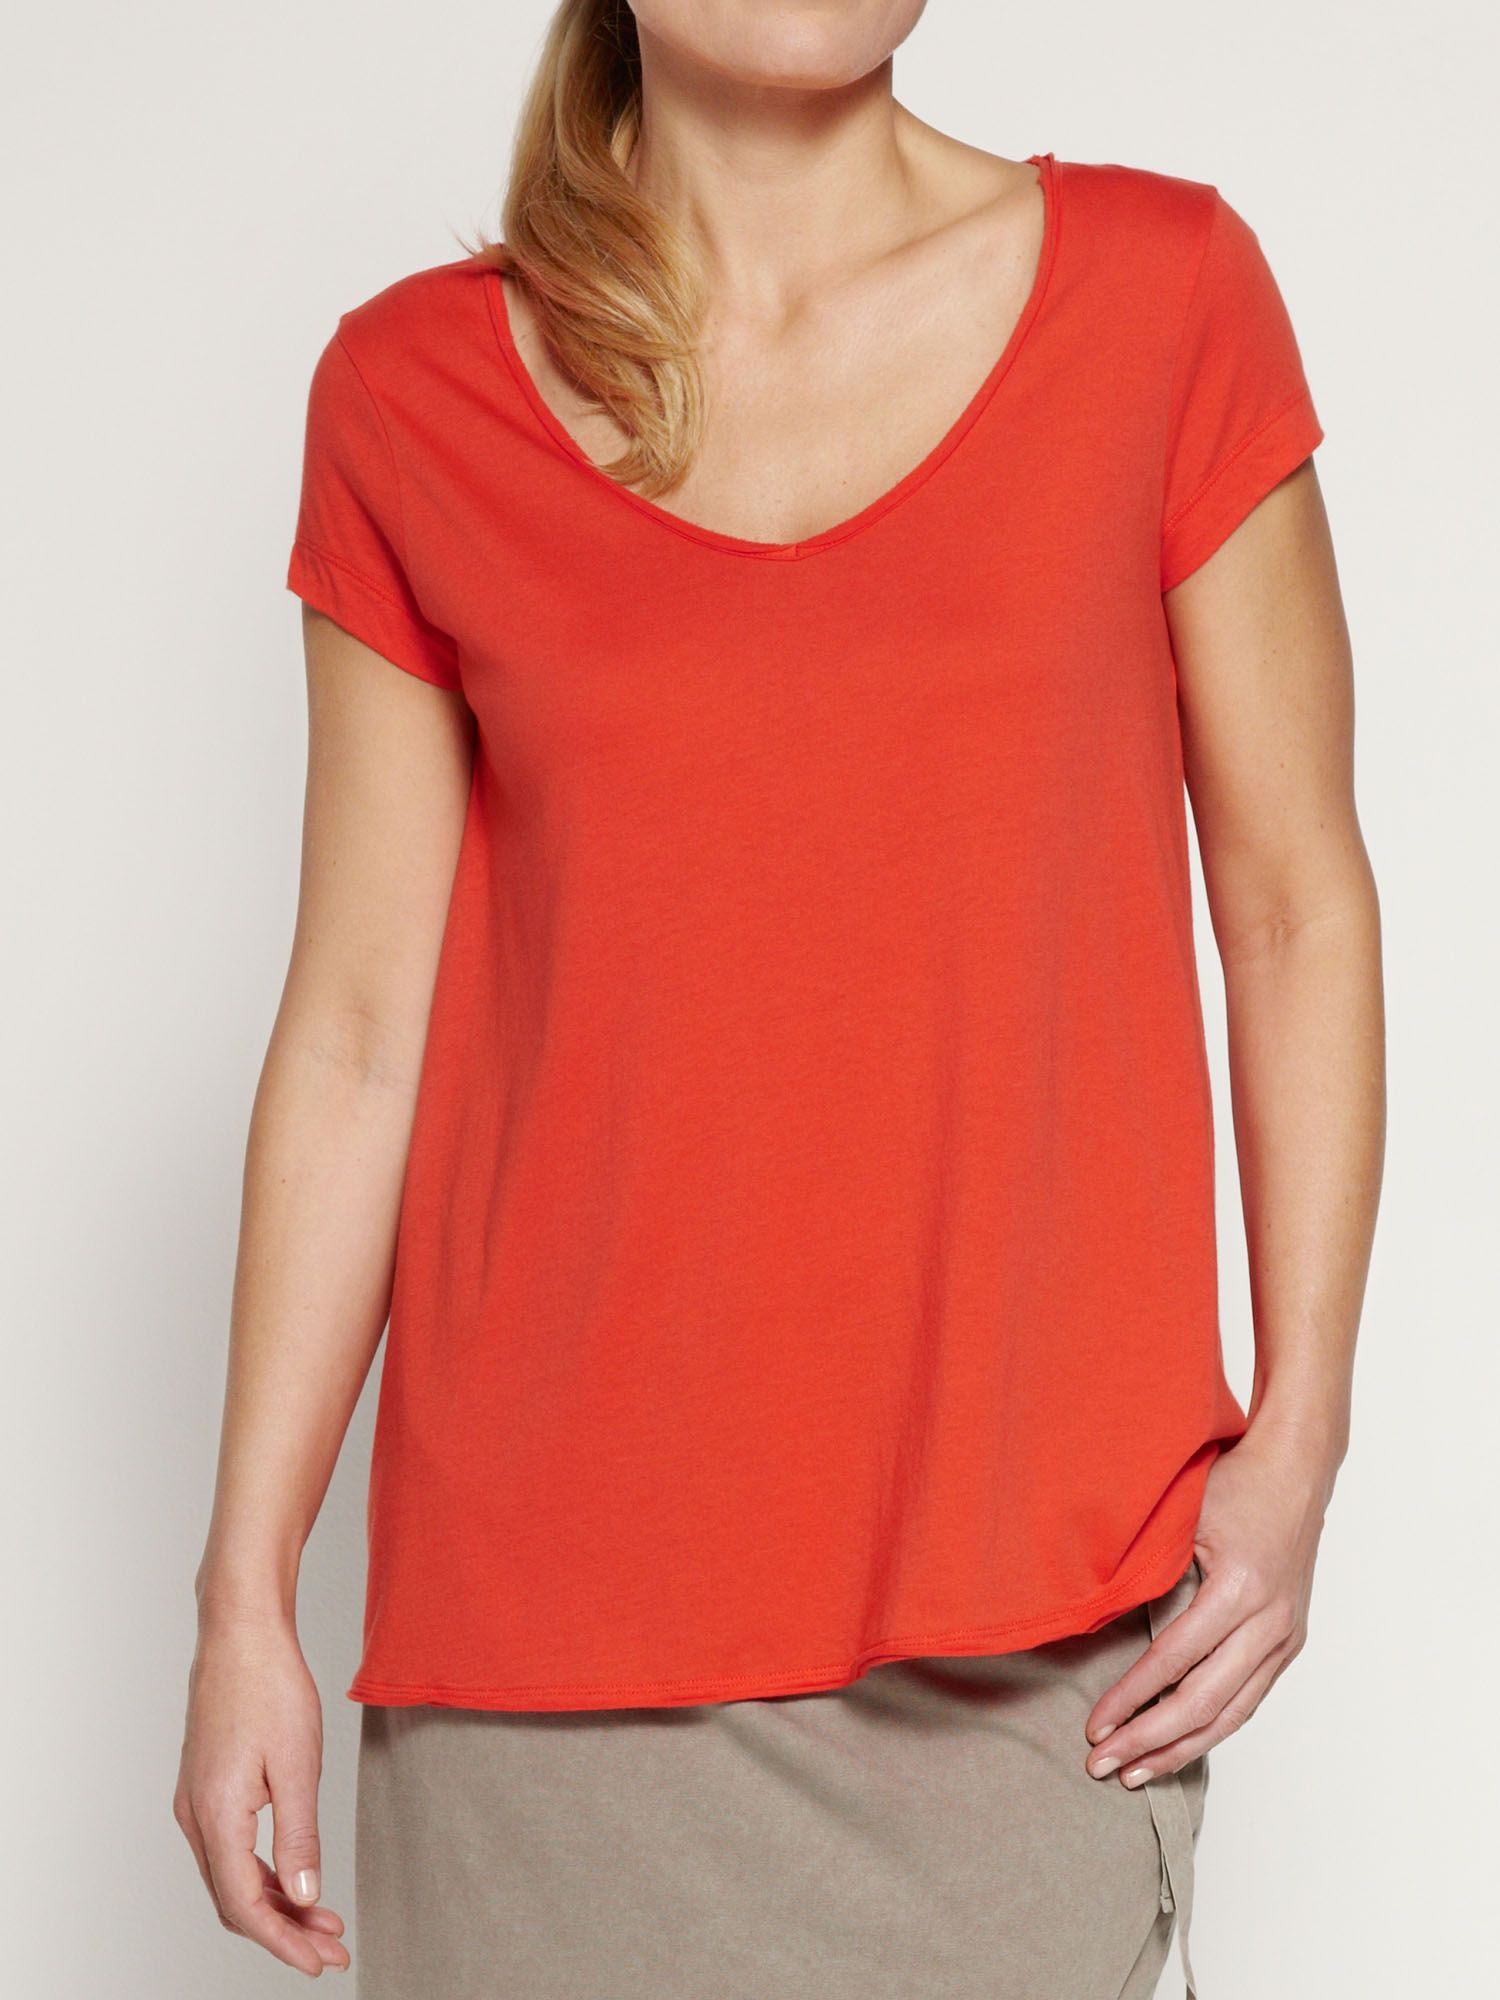 Loose fitting cotton t-shirt